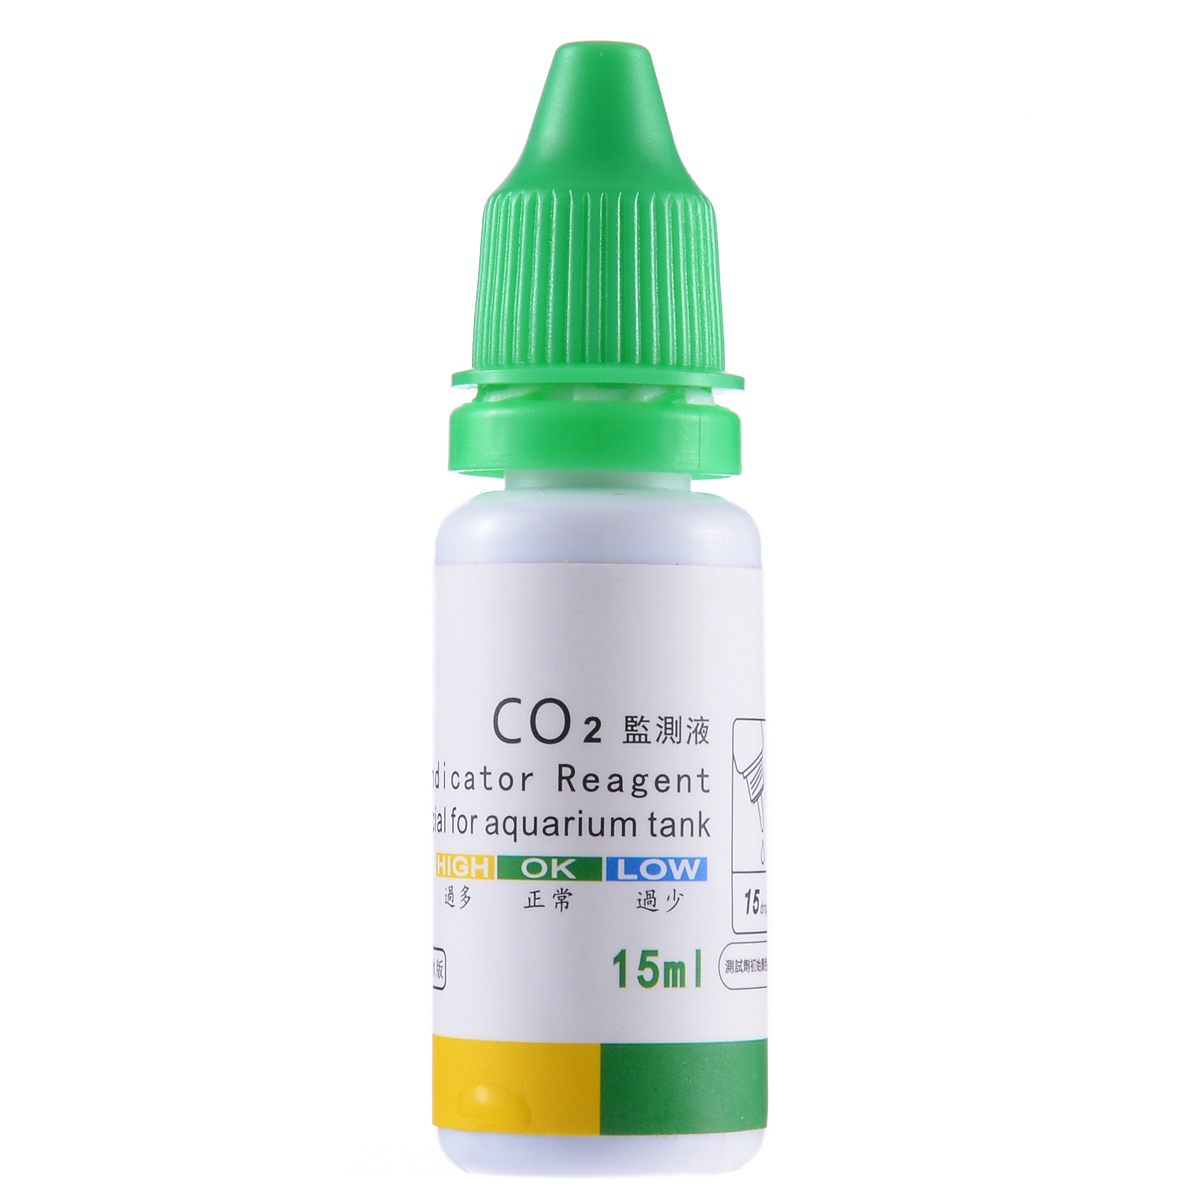 Aquarium CO2 Monitor Glass Drop Carbon Dioxide Ball Checker Tester PH Indicator Fish Tank Water Live Moss Plant Tester